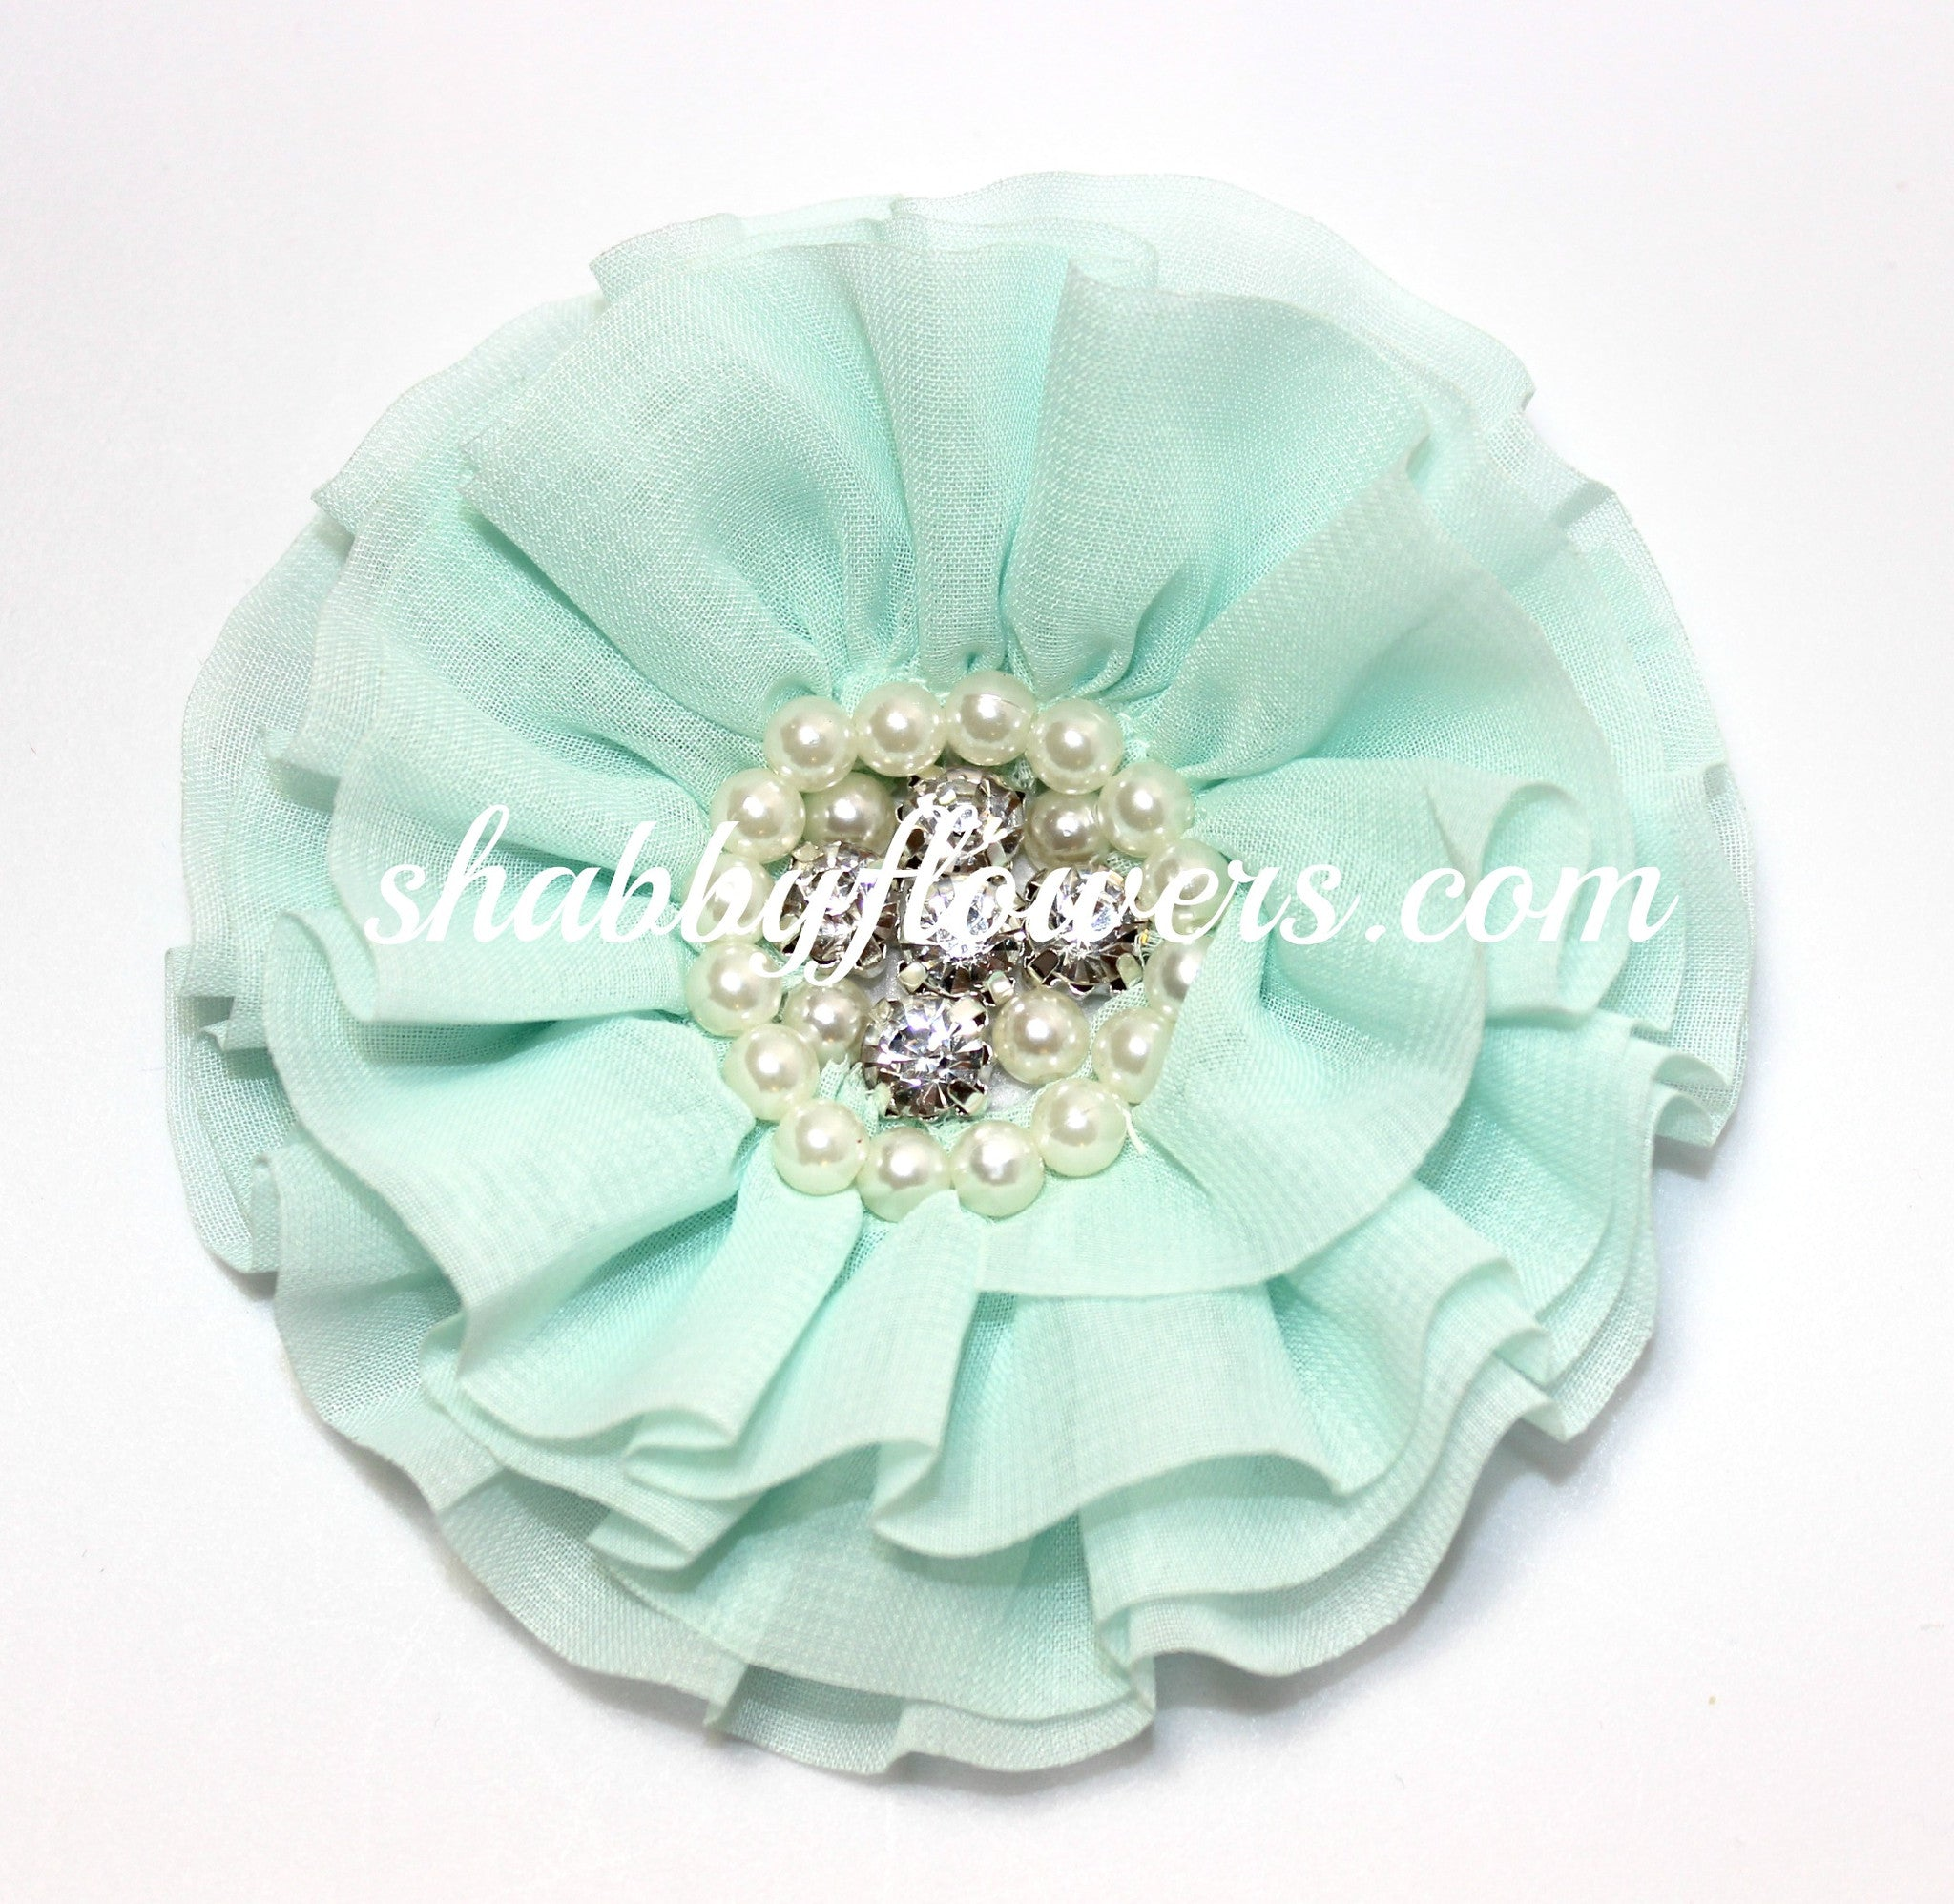 Jeweled Flower - Mint - shabbyflowers.com